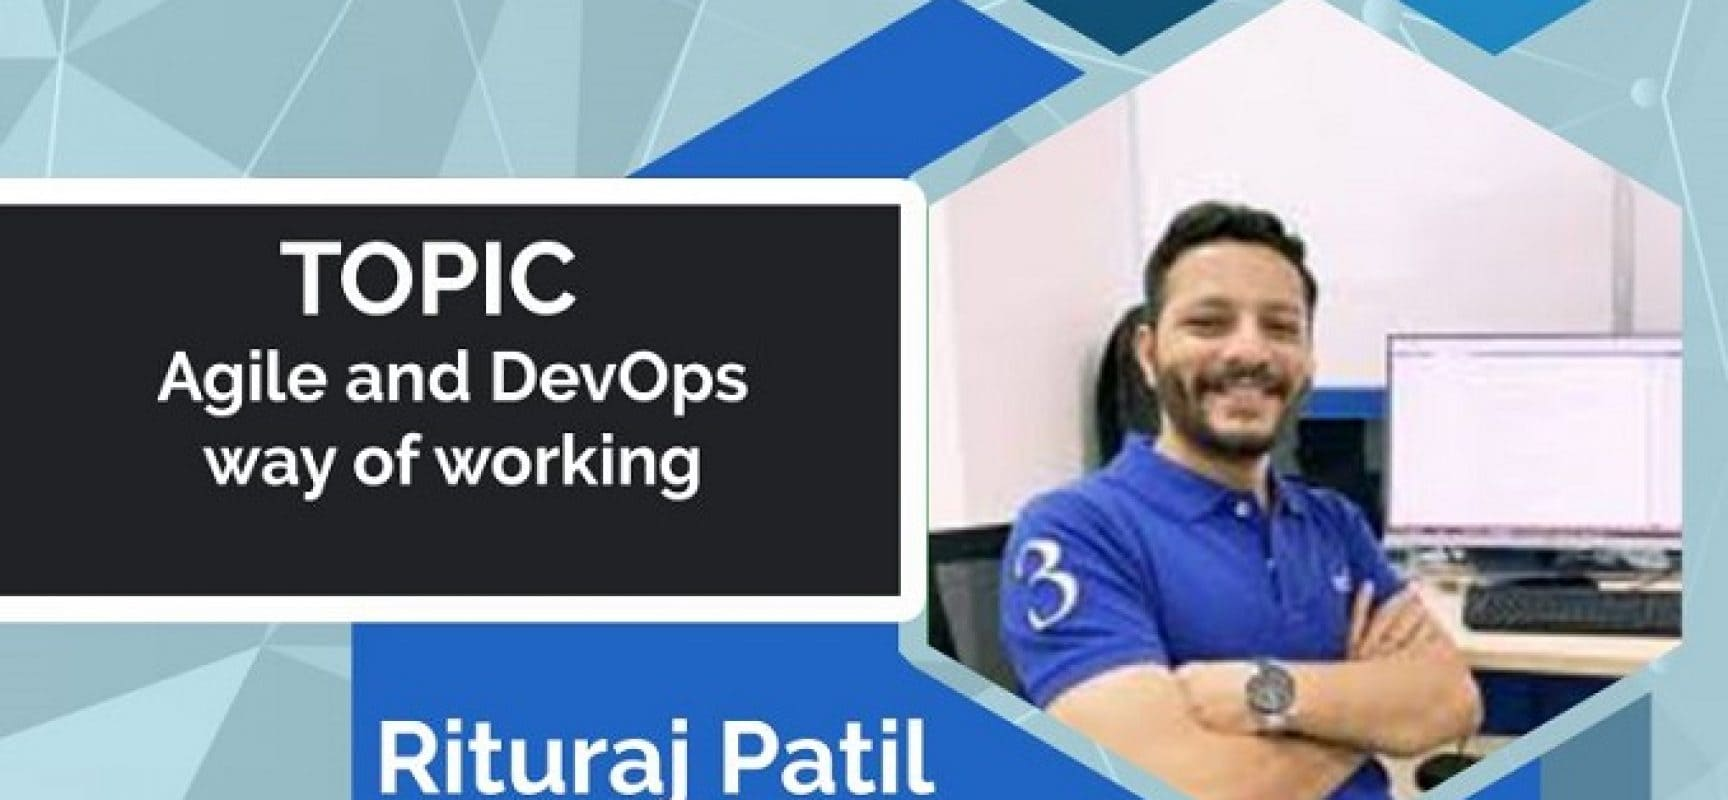 E-TALK: AGILE AND DEVOPS WAY OF WORKING